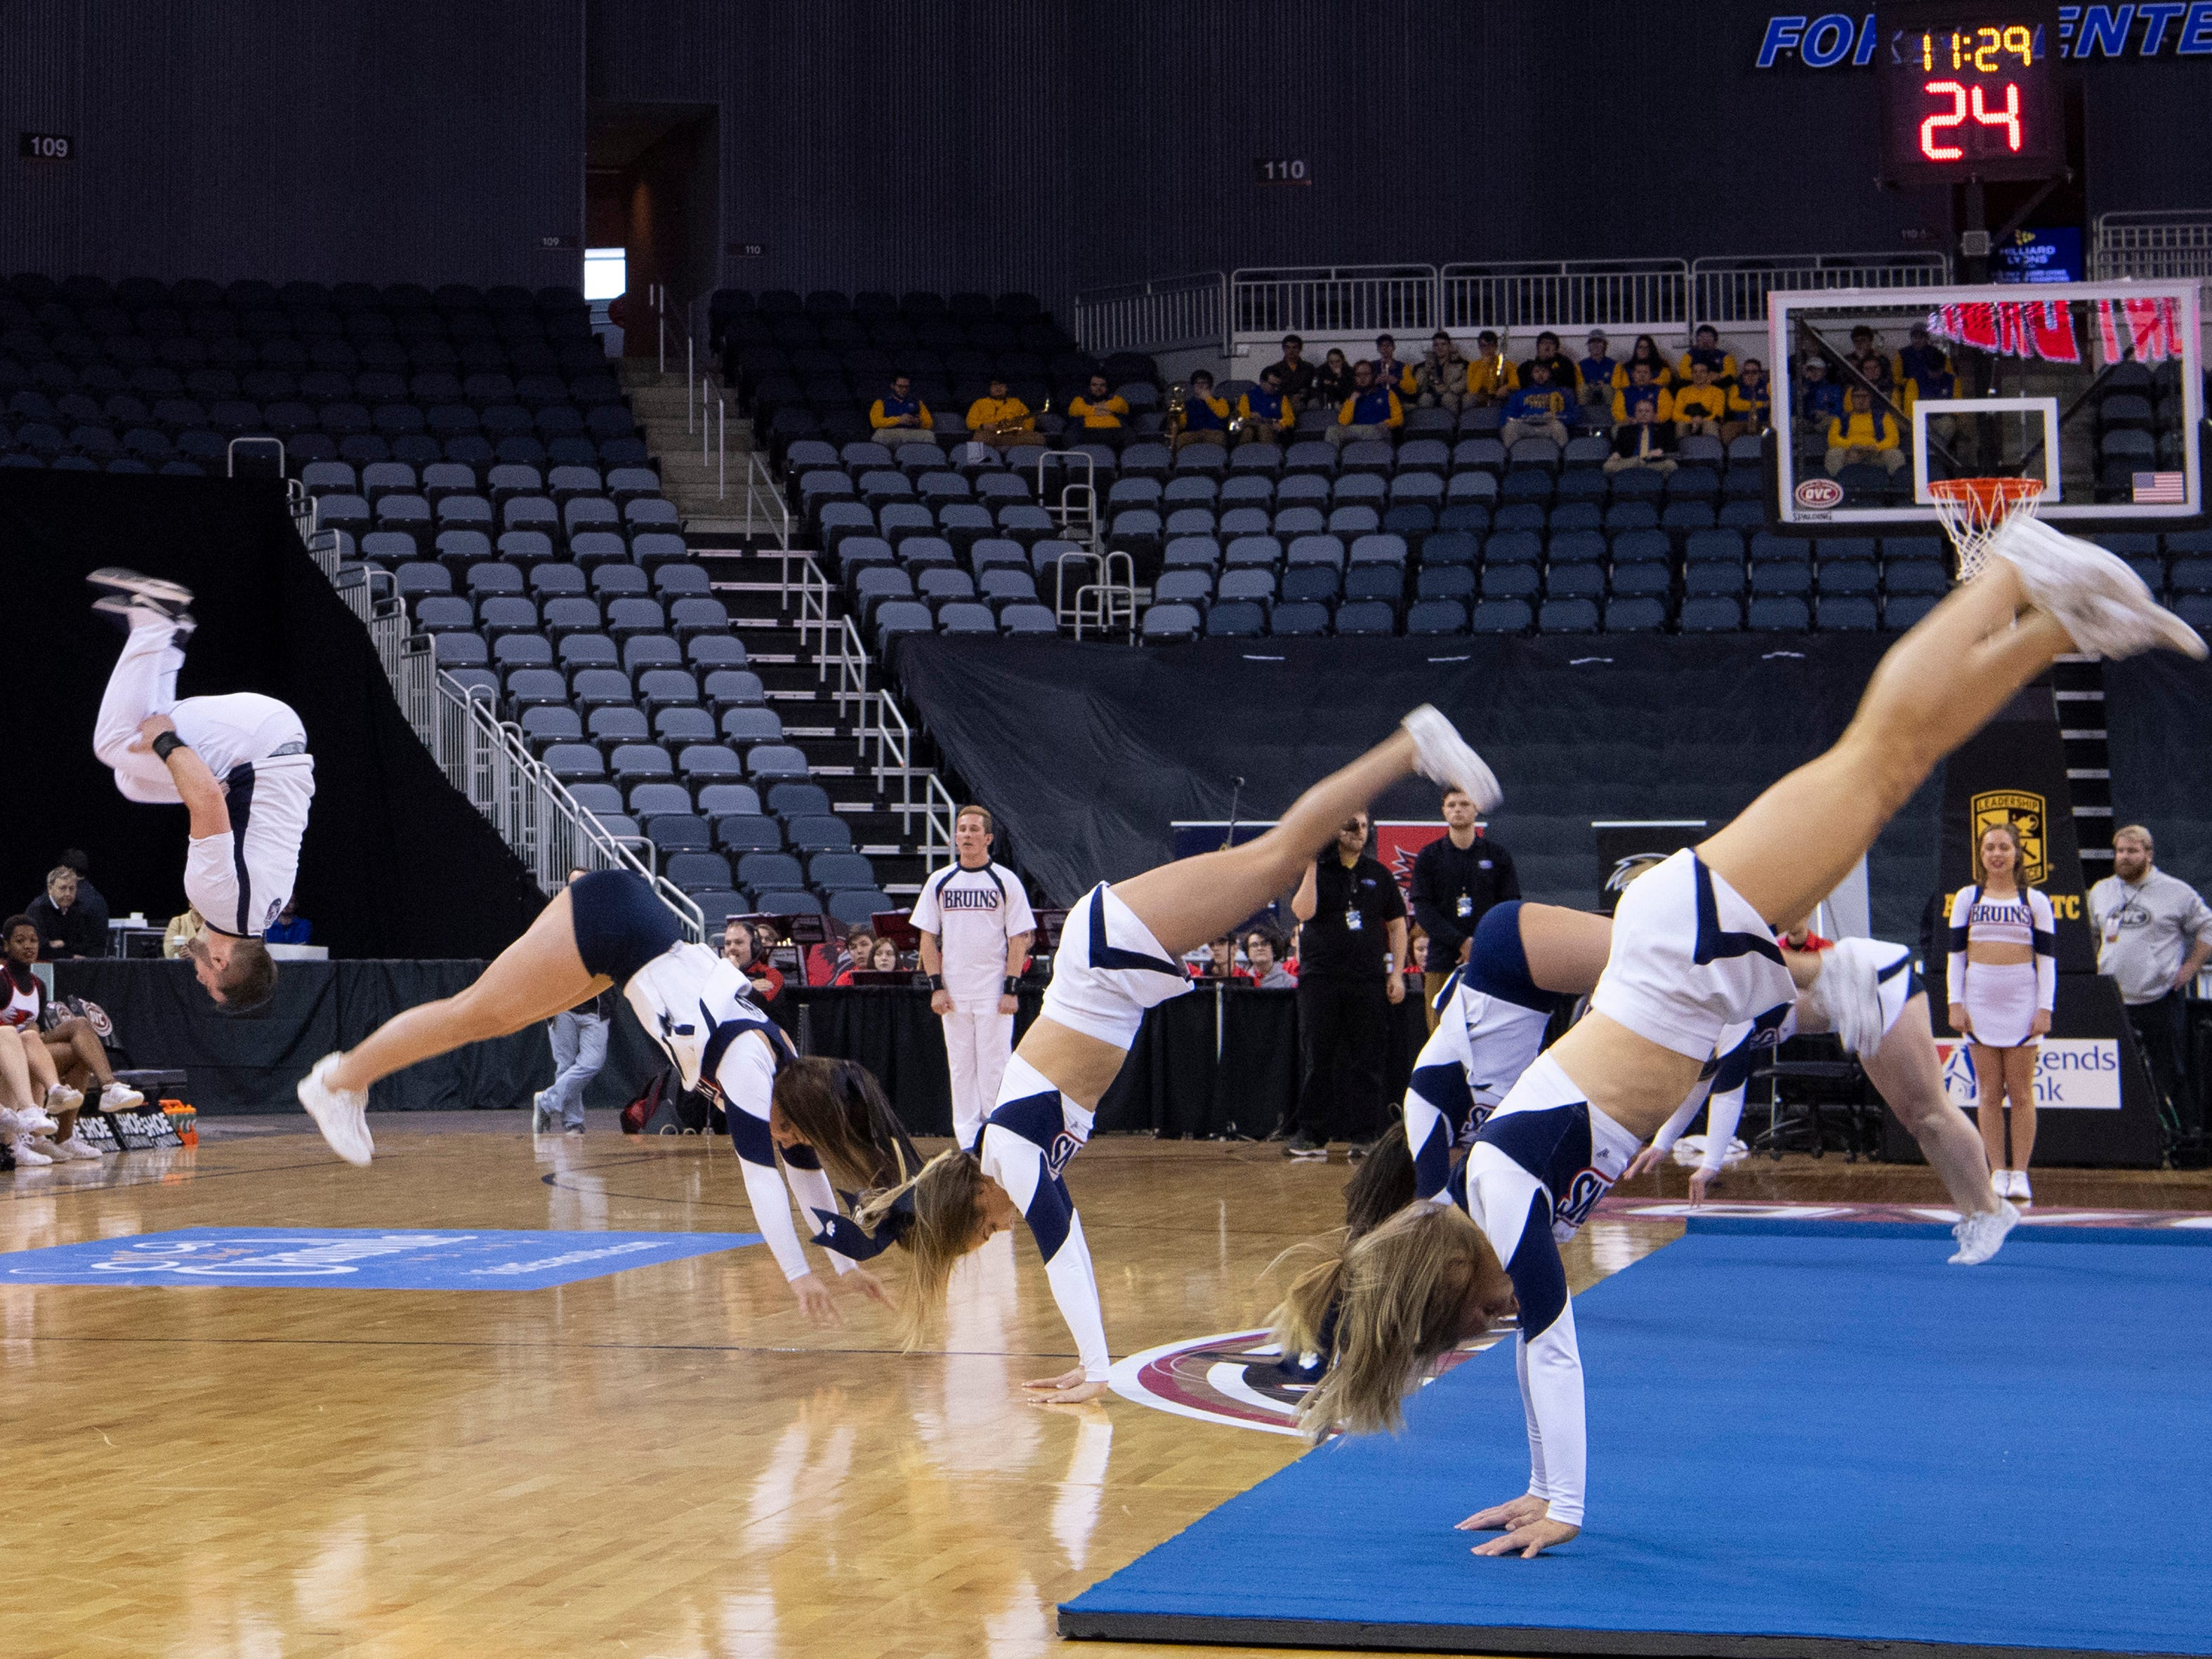 The Belmont University cheer squad performs at halftime of the women's game against Southeast Missouri at the Ohio Valley Conference Basketball Championships at the Ford Center Wednesday afternoon.